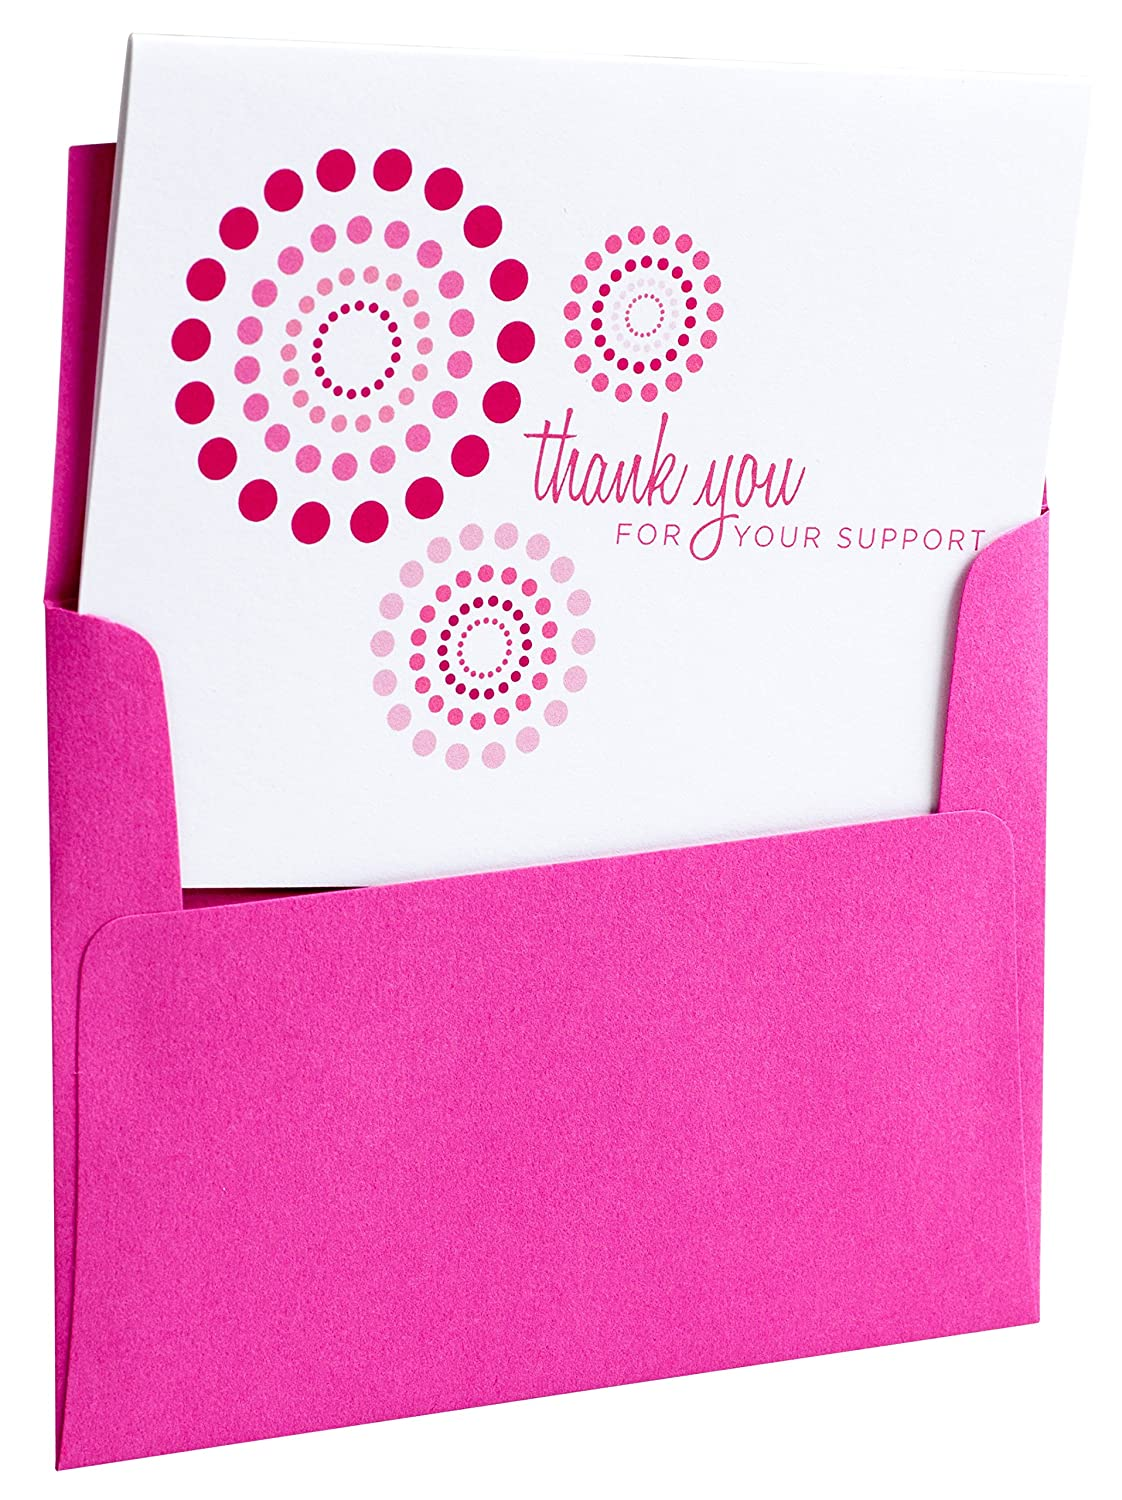 10 Breast Cancer Support, Modern Pink Ribbon Thank You Cards, Printed on 100 Recycled Stock – For Charity Events, Runs, Walks and 3-Day – Maddie by Two Poodle Press